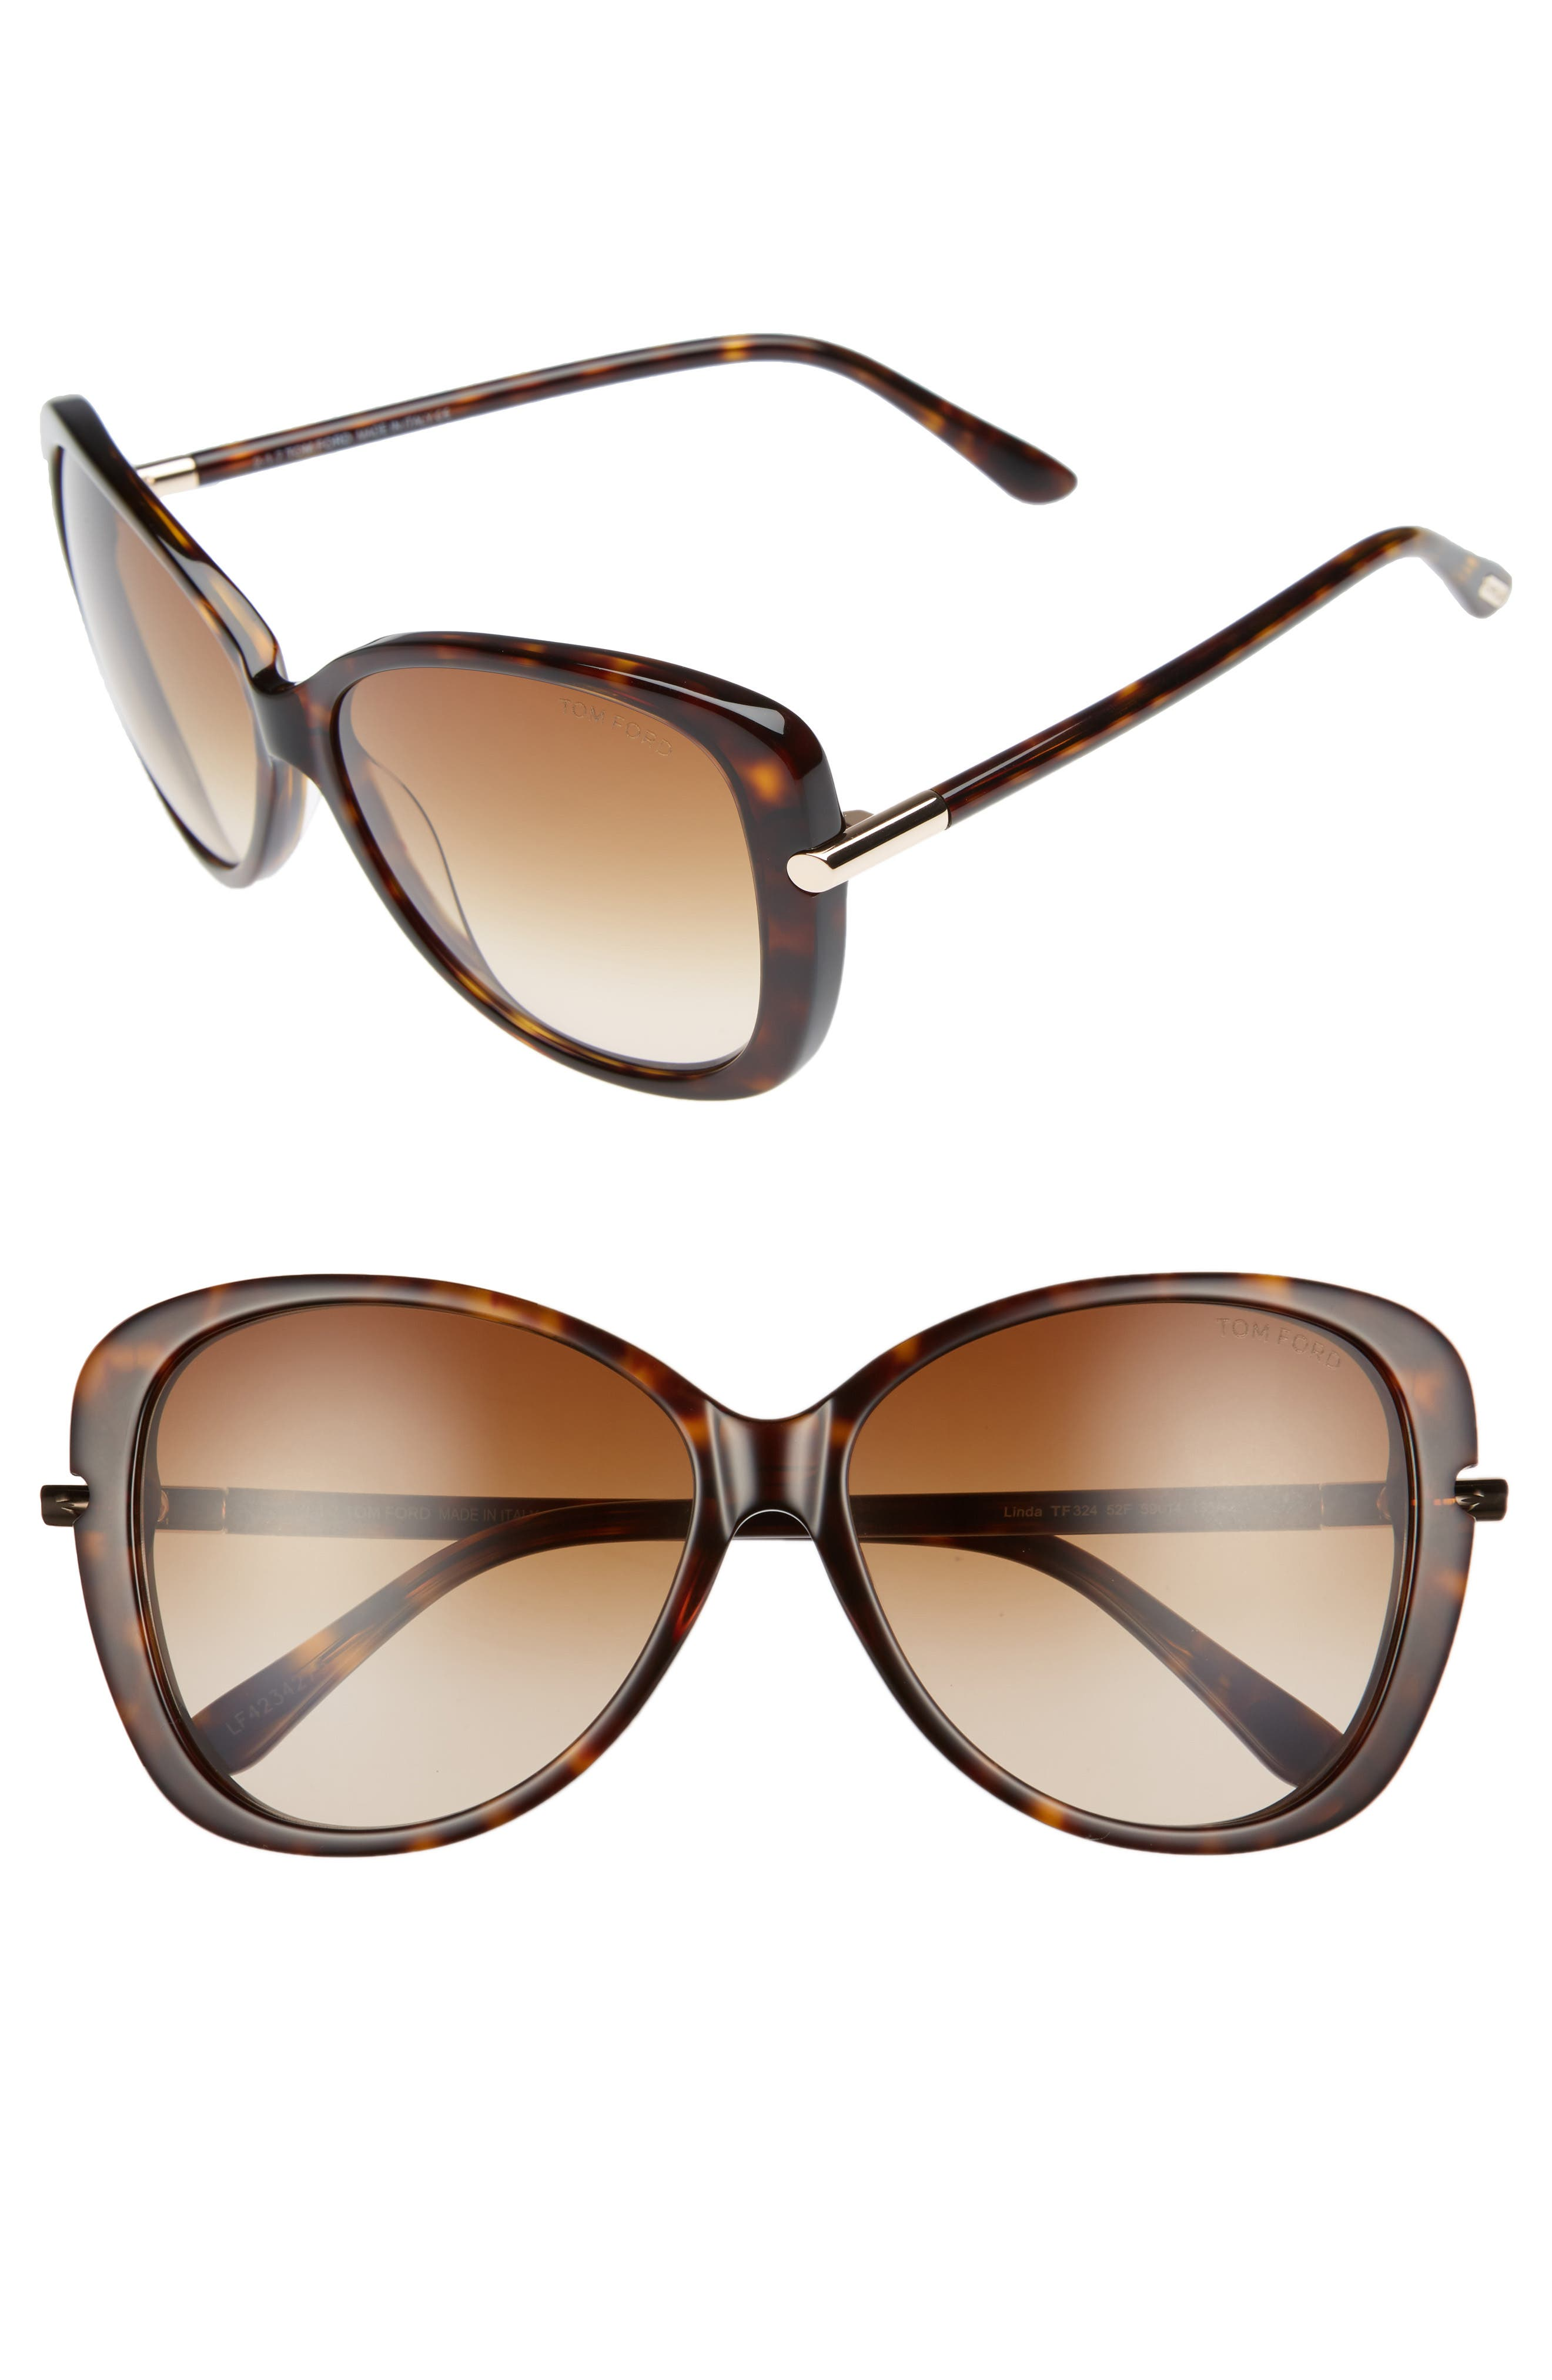 TOM FORD,                             Linda 59mm Gradient Butterfly Sunglasses,                             Main thumbnail 1, color,                             200